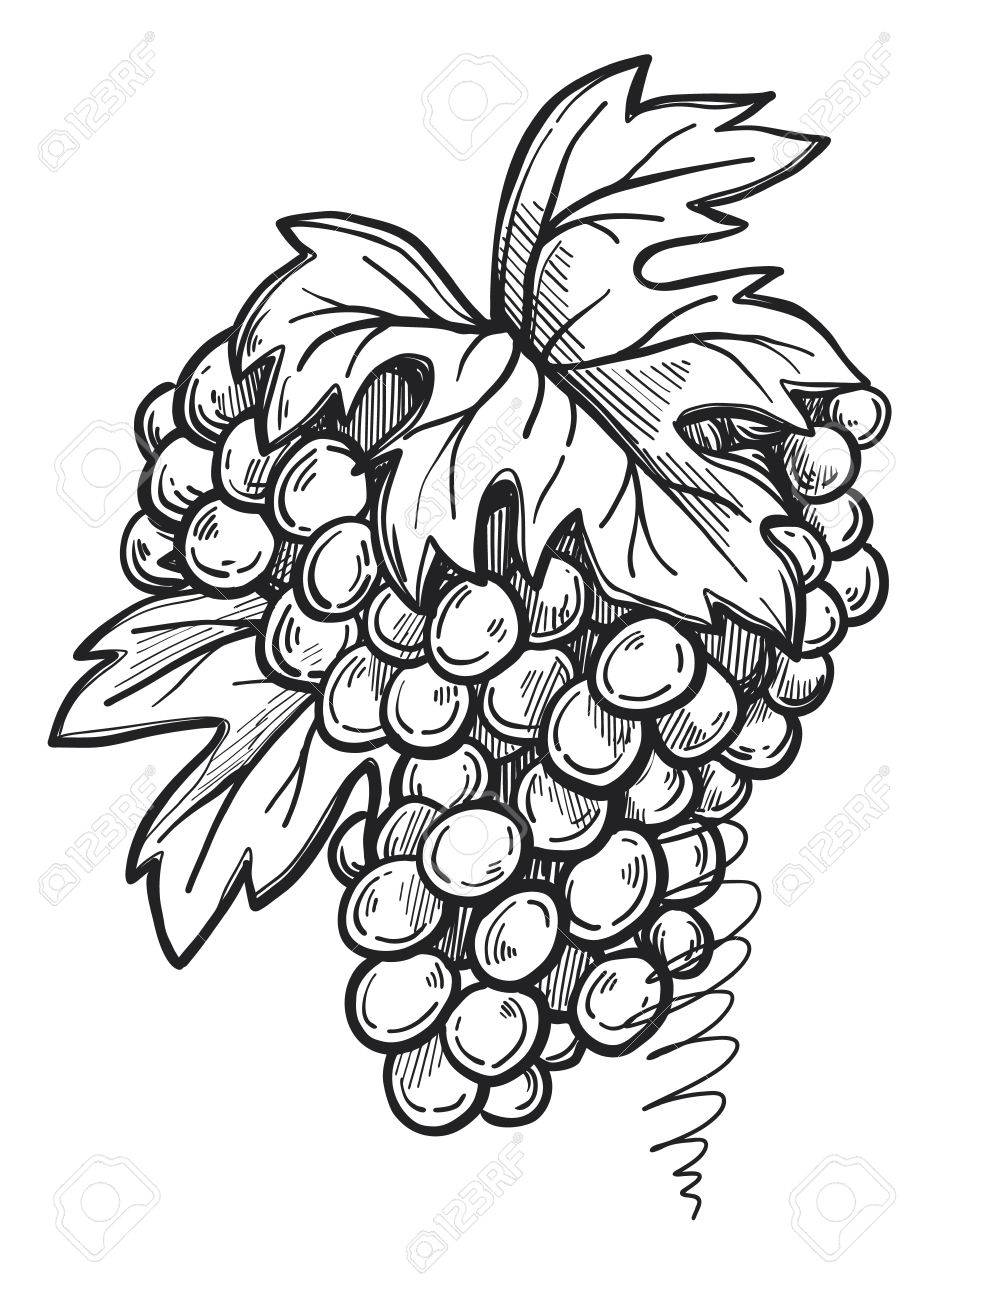 1004x1300 Bunch Of Grapes Freehand Pencil Drawing Isolated On White